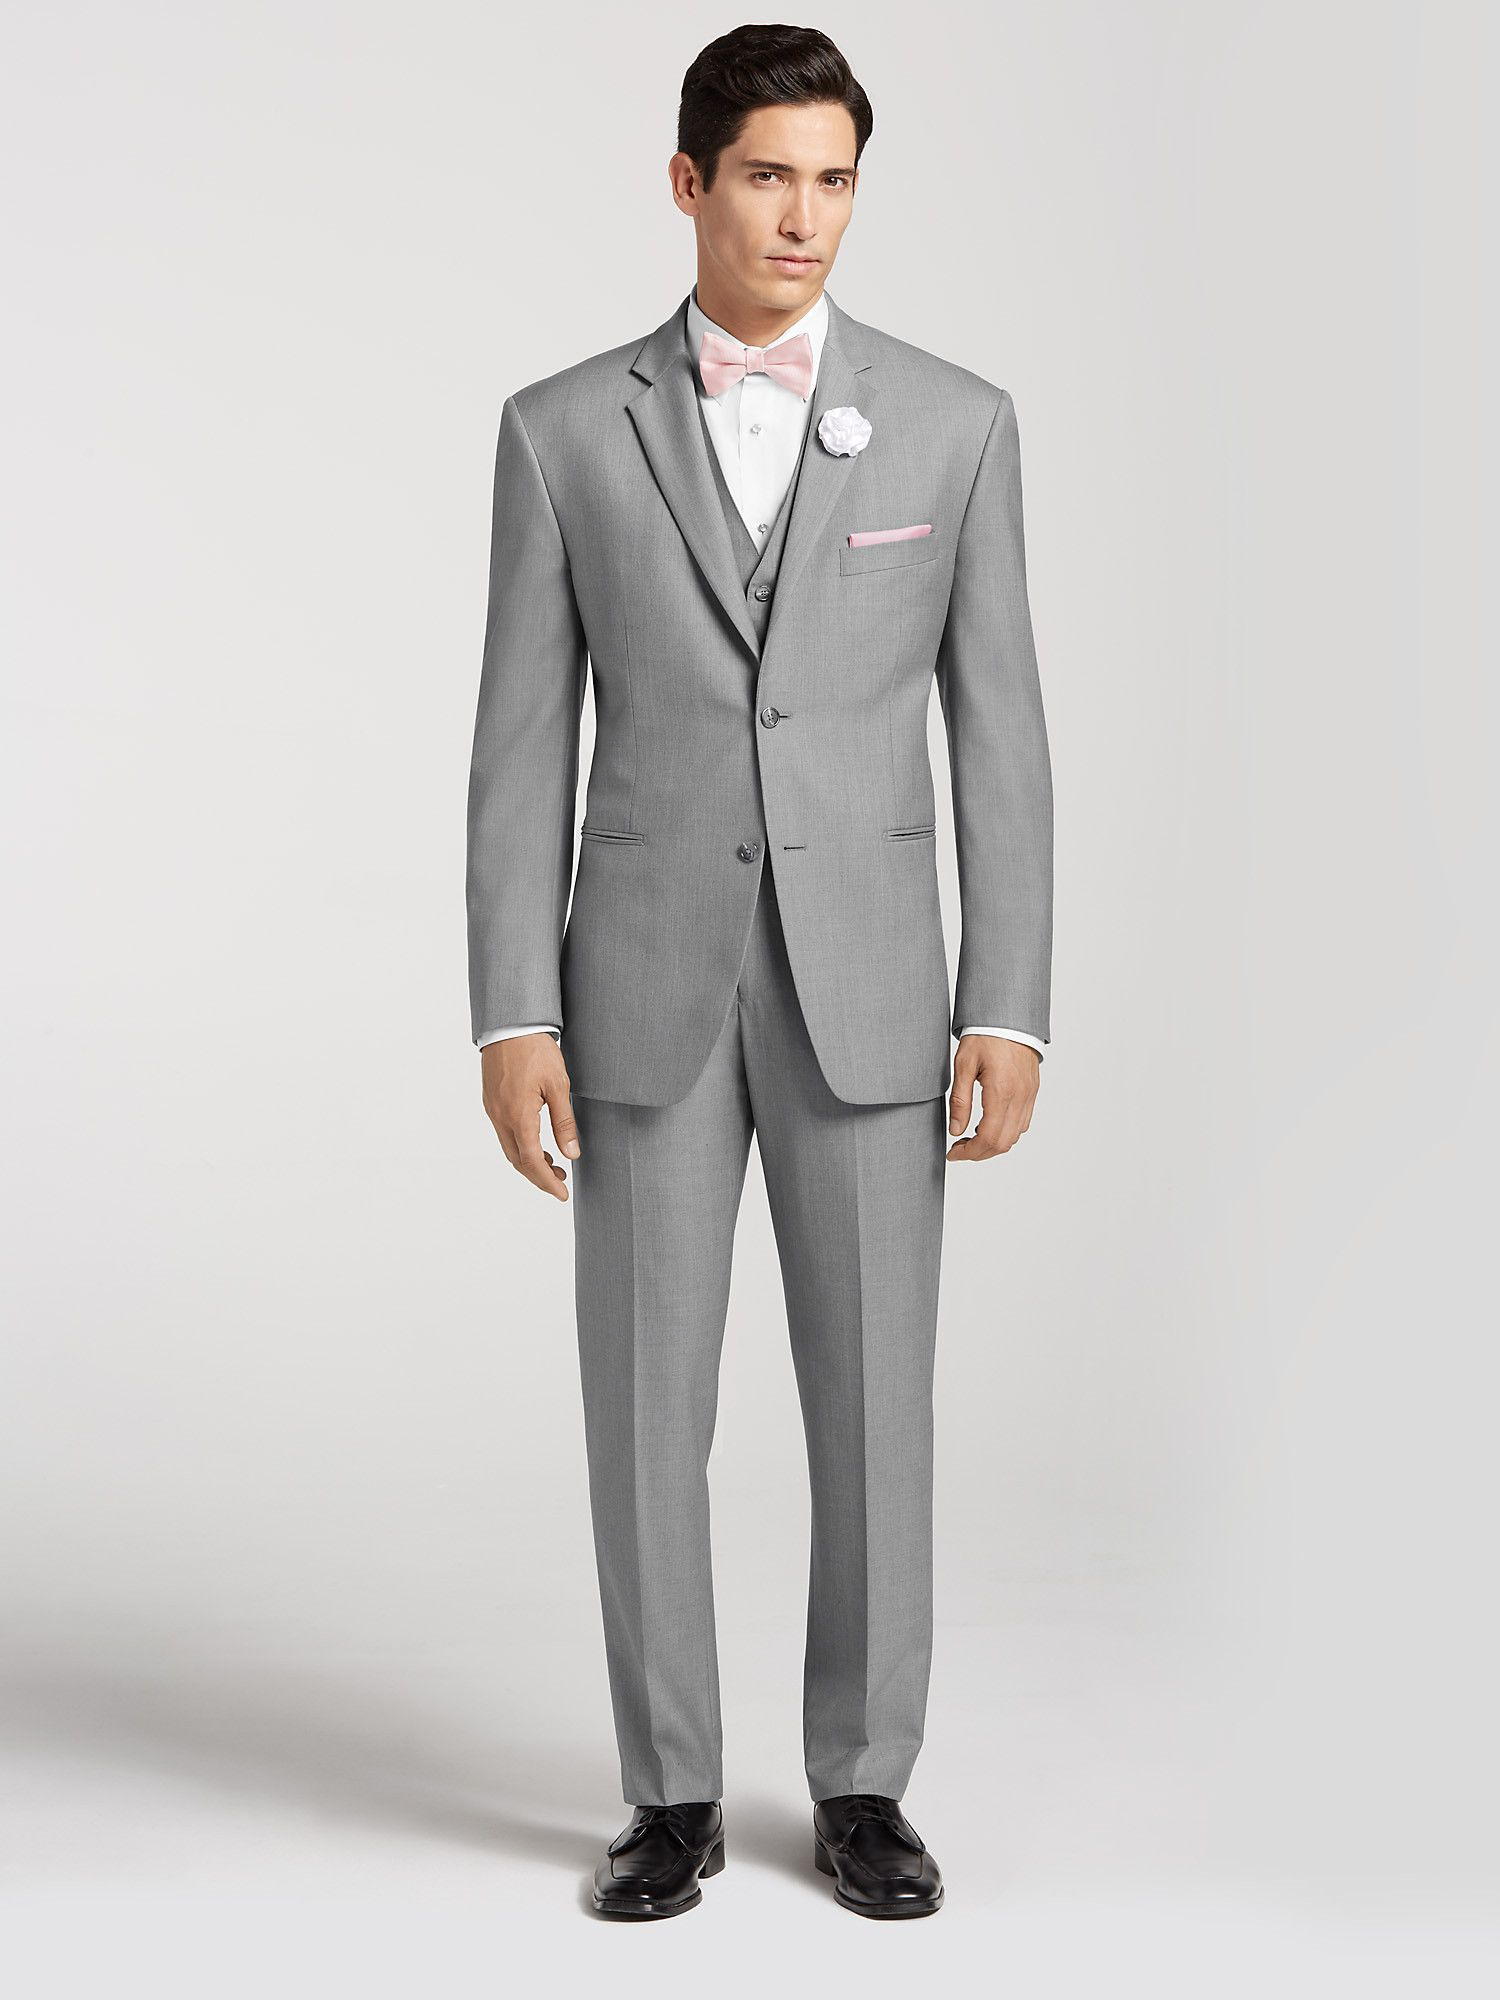 Generic Grey Suit By Men S Wearhouse For 157 Complete Outfit Vest Included